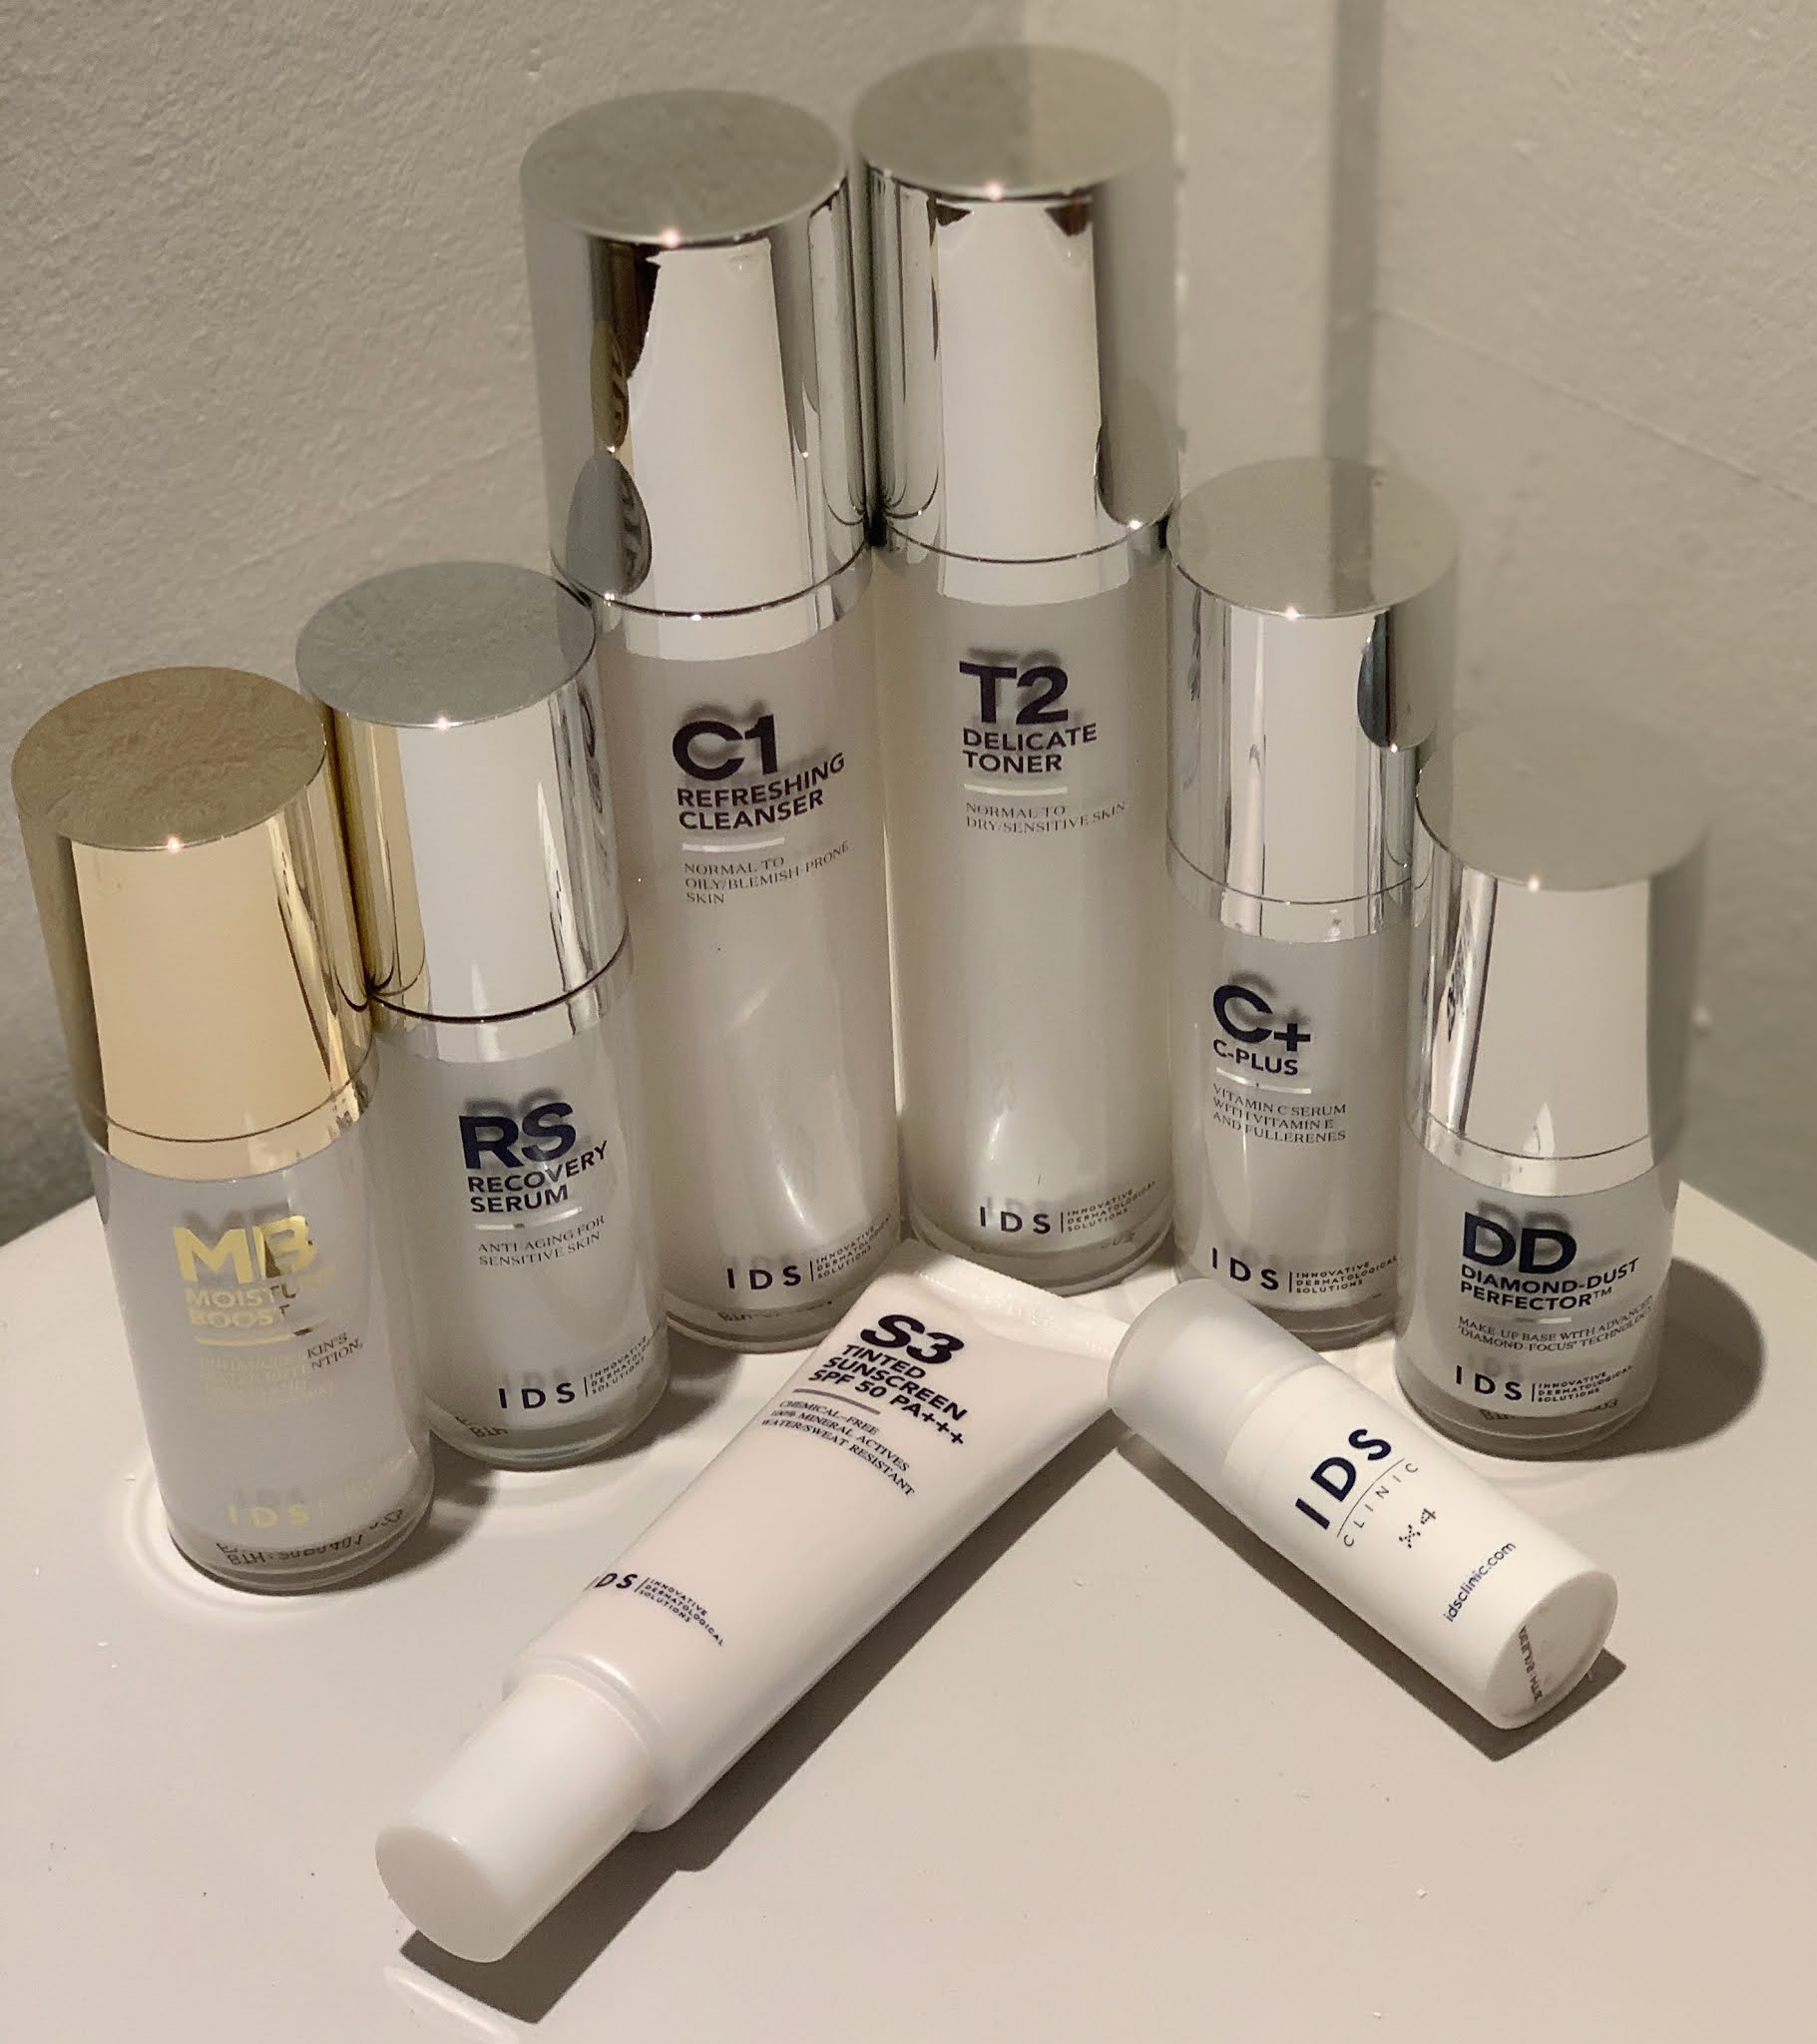 [ Jess Baby ] [part 01] My IDS Journey with IDS - IDS Skincare